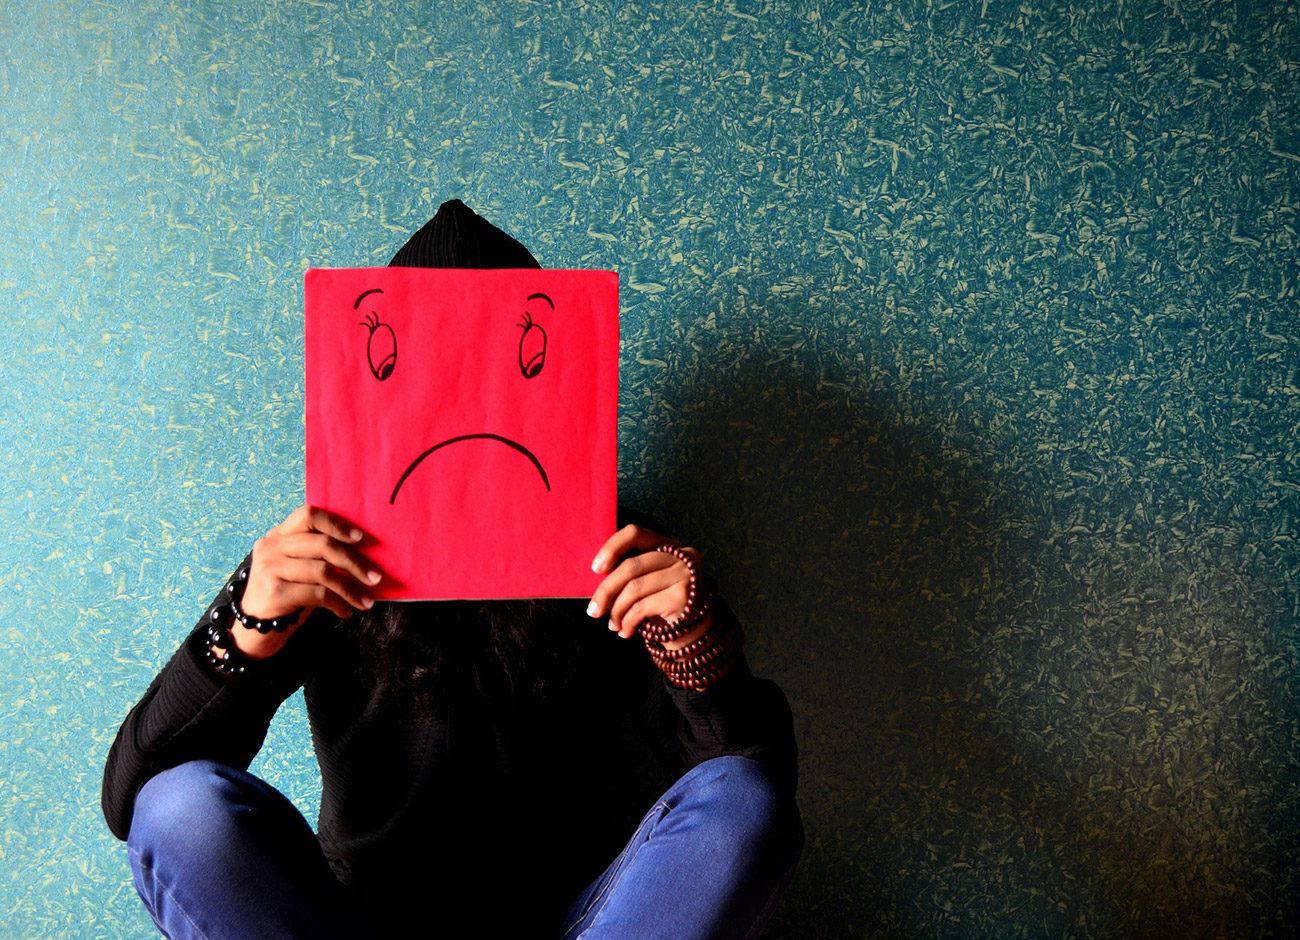 man sitting on wall holding a sad face sign